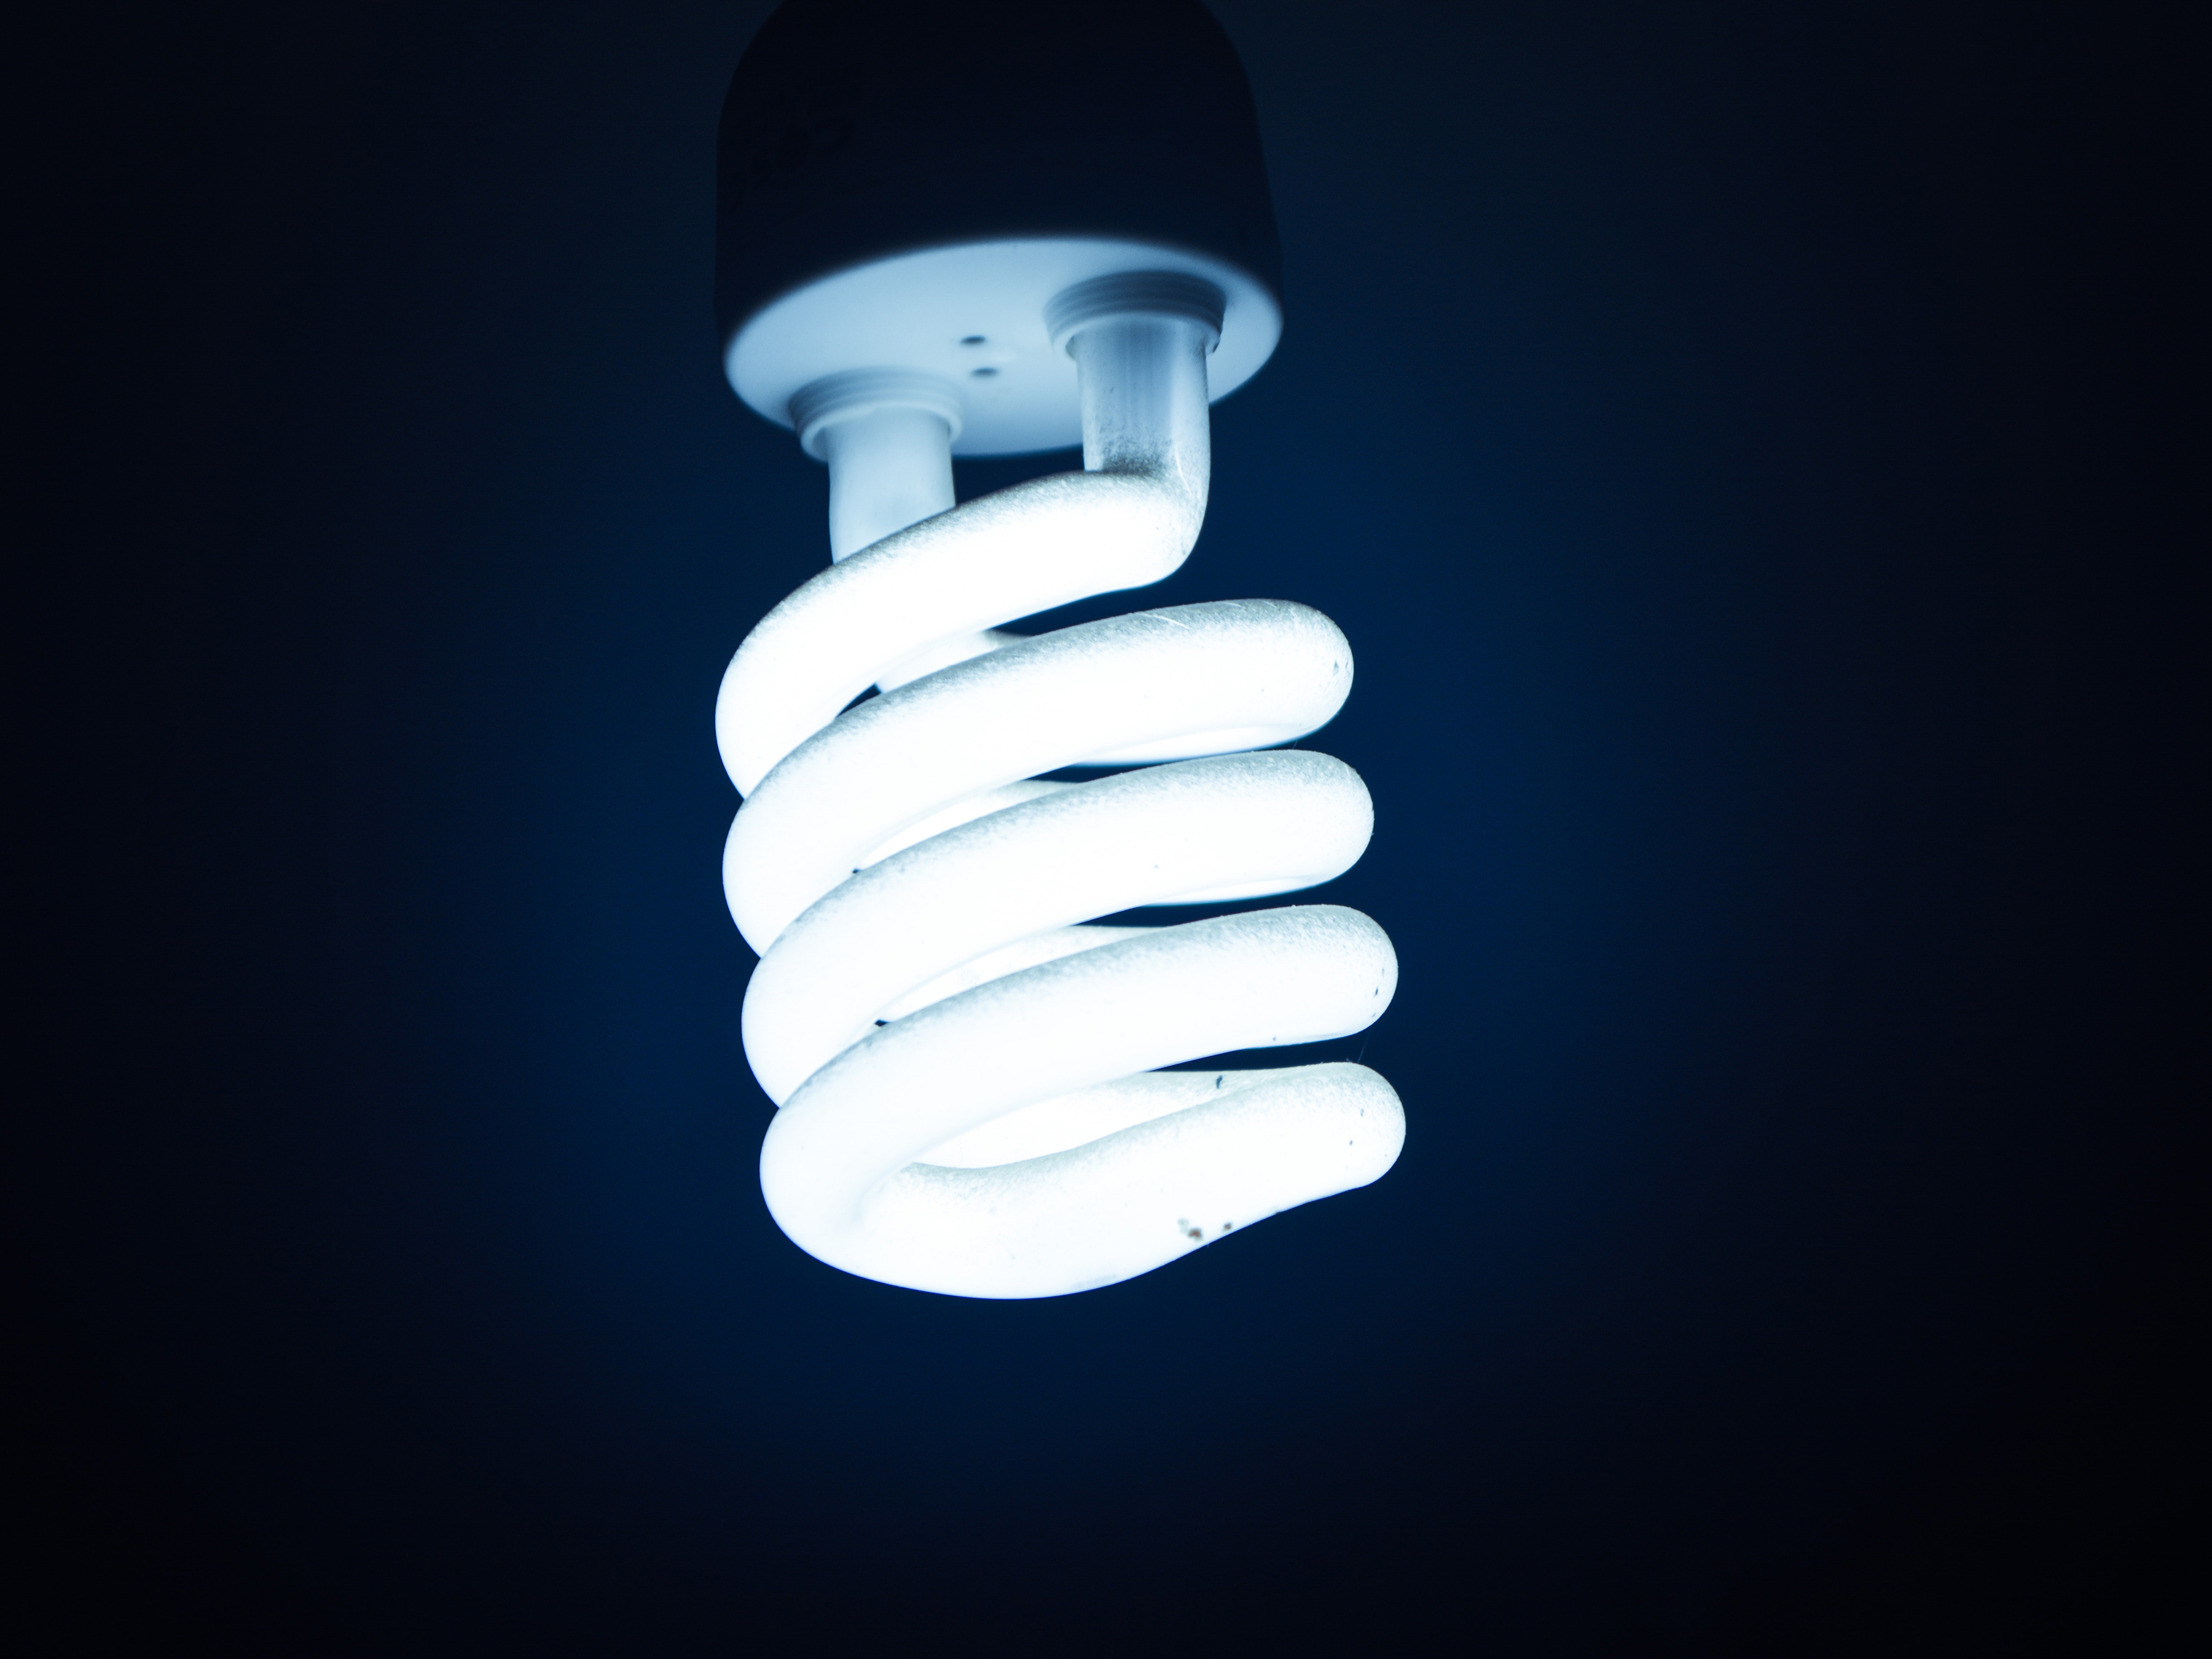 Led Technology Isn't All That Sustainable